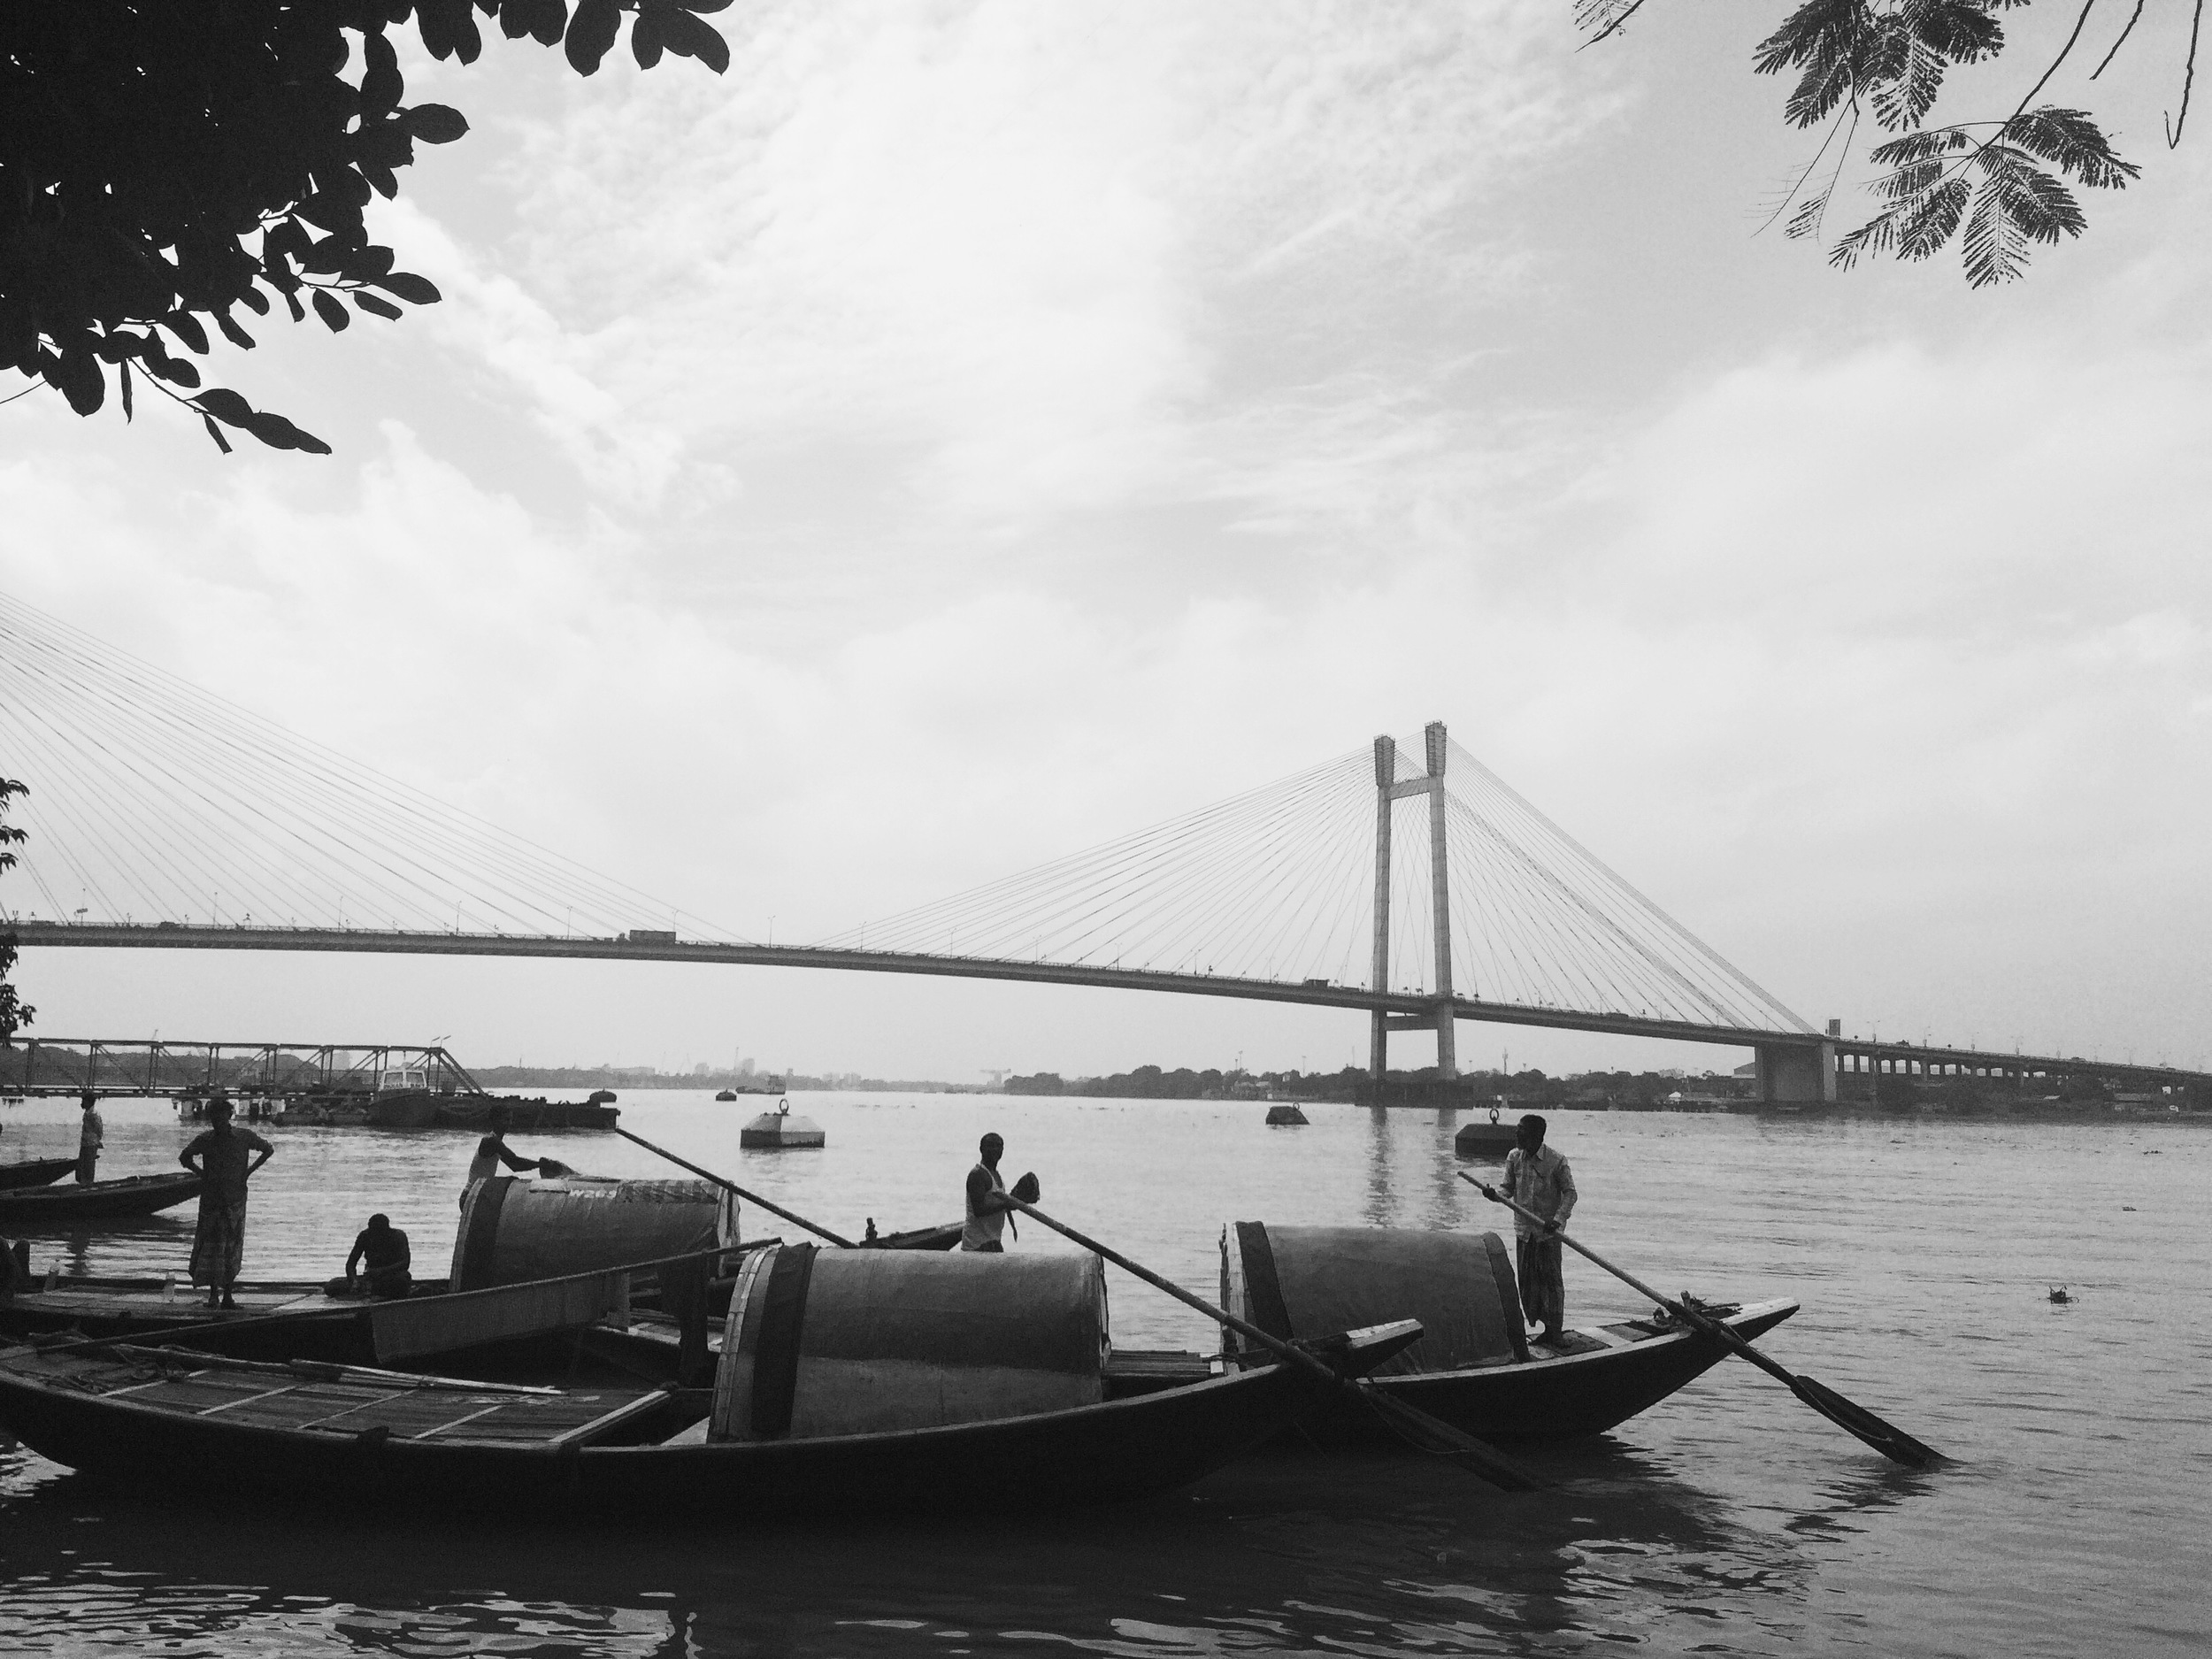 Vidhya Sagar Sethu Bridge from Prinsep Ghat